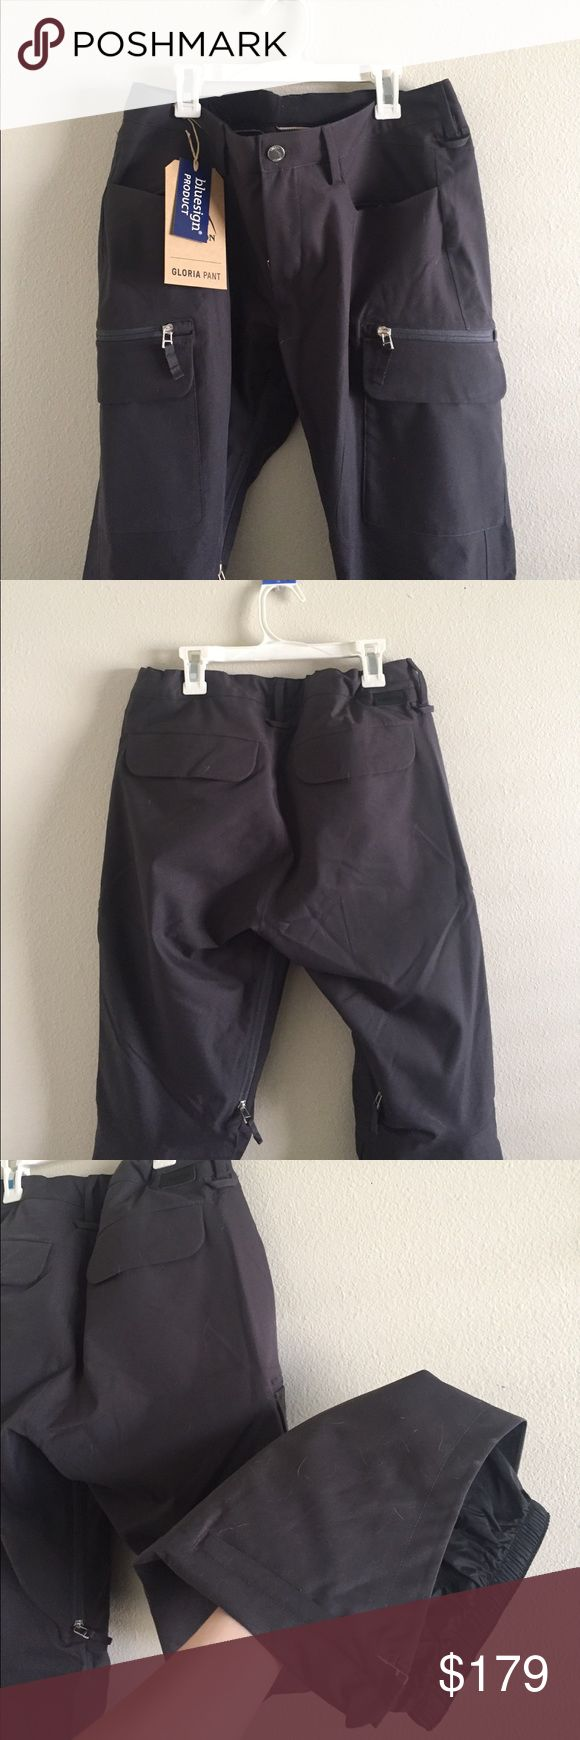 Burton women's snowboard Gloria pants (dark grey) Ordered these and they came in the wrong color. I never wore them. Very good quality snowboard pants though, I have the same pair in black and I love them. Burton Other